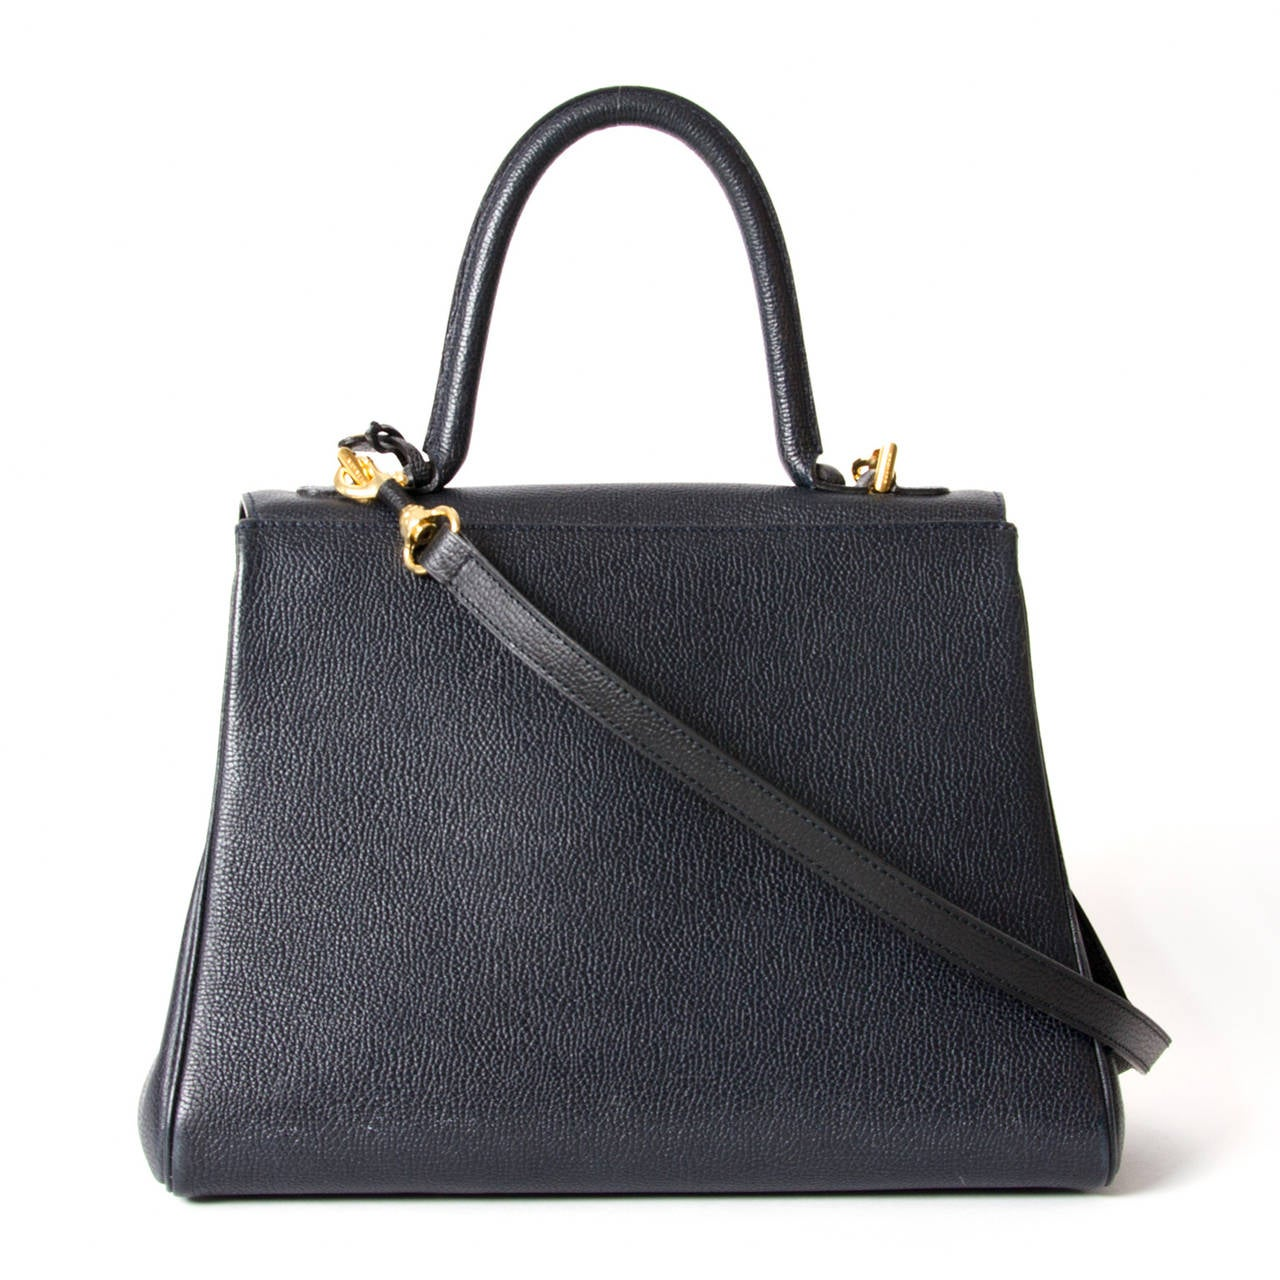 Delvaux In Excellent Condition For Sale In Antwerp, BE